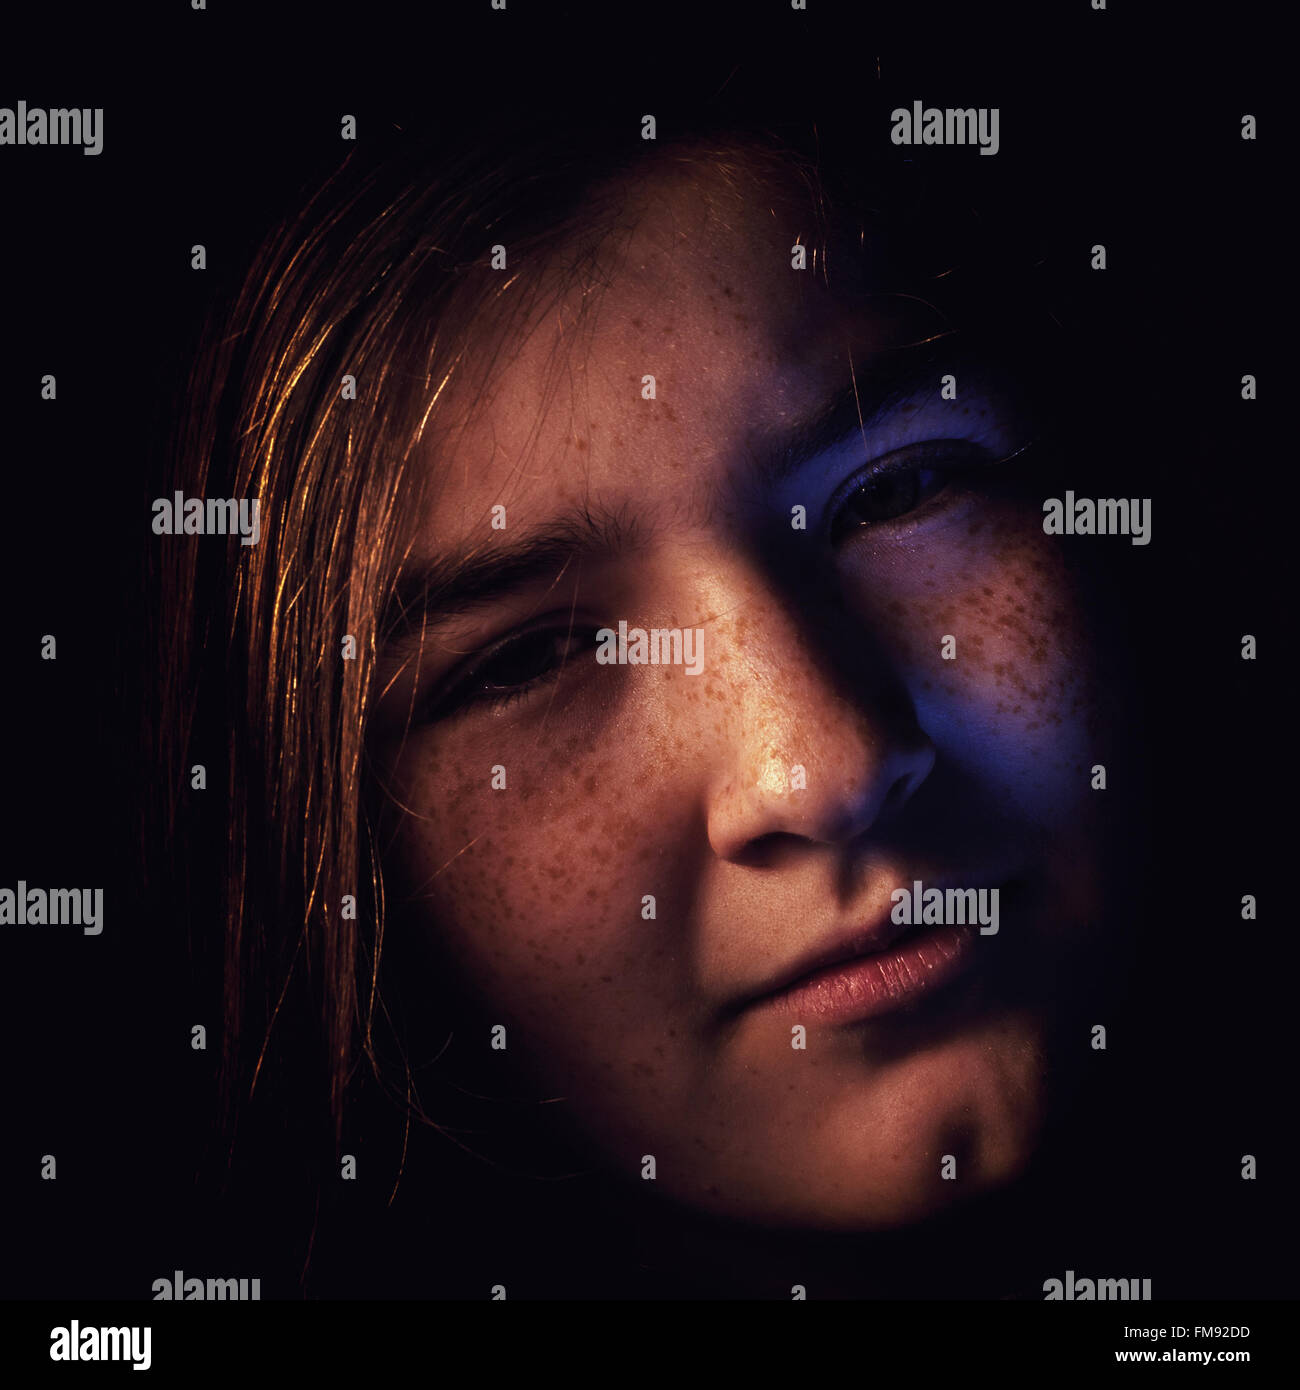 Portrait of a young girl with face expression of unhappy feelings. - Stock Image